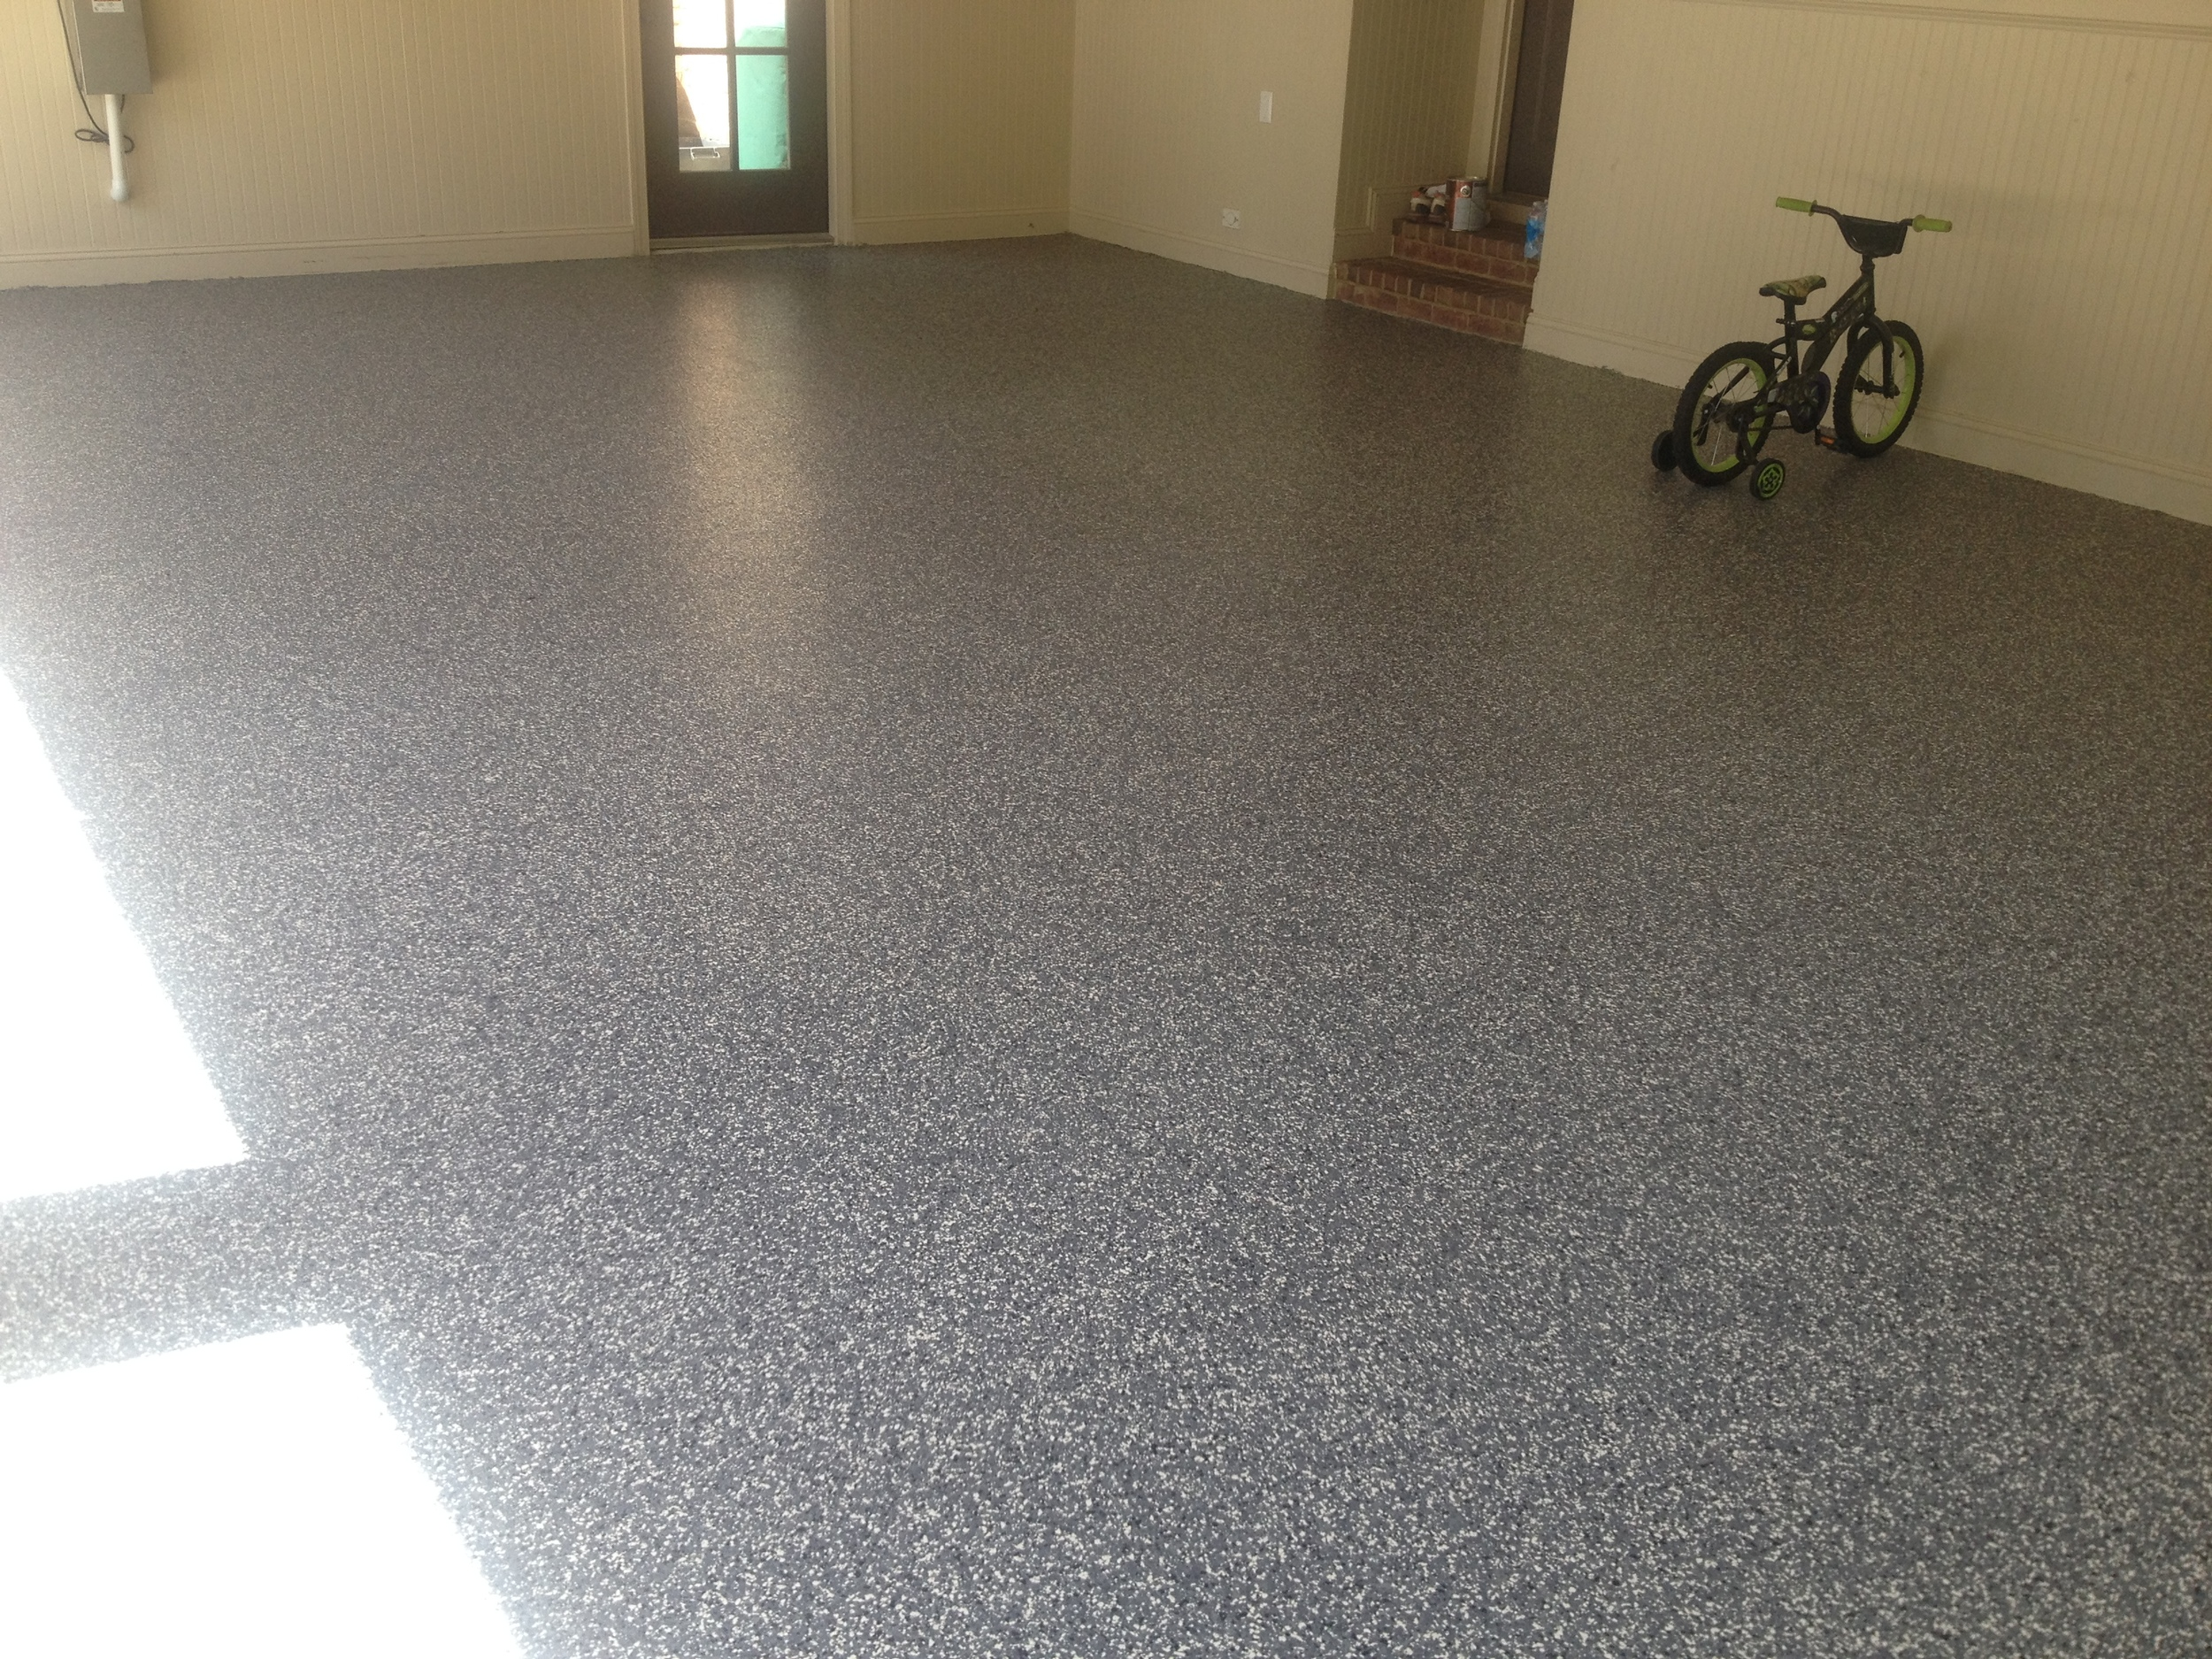 Epoxy Floor Coating Under Full Color-Flake System